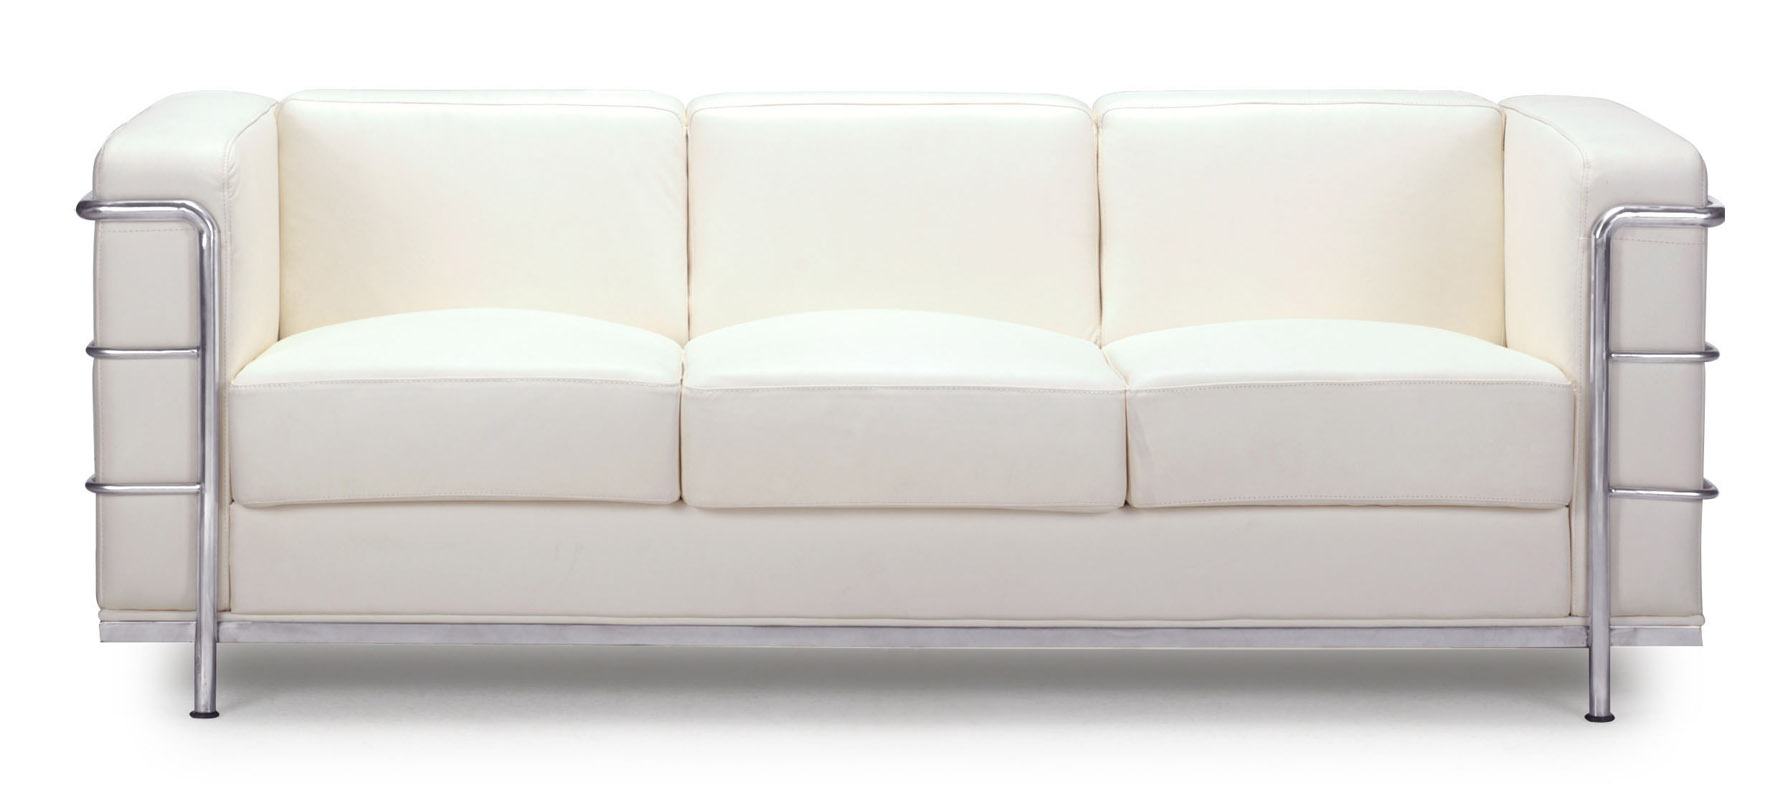 Renny Modern Leather With Chromed Steel Frame Sofa White